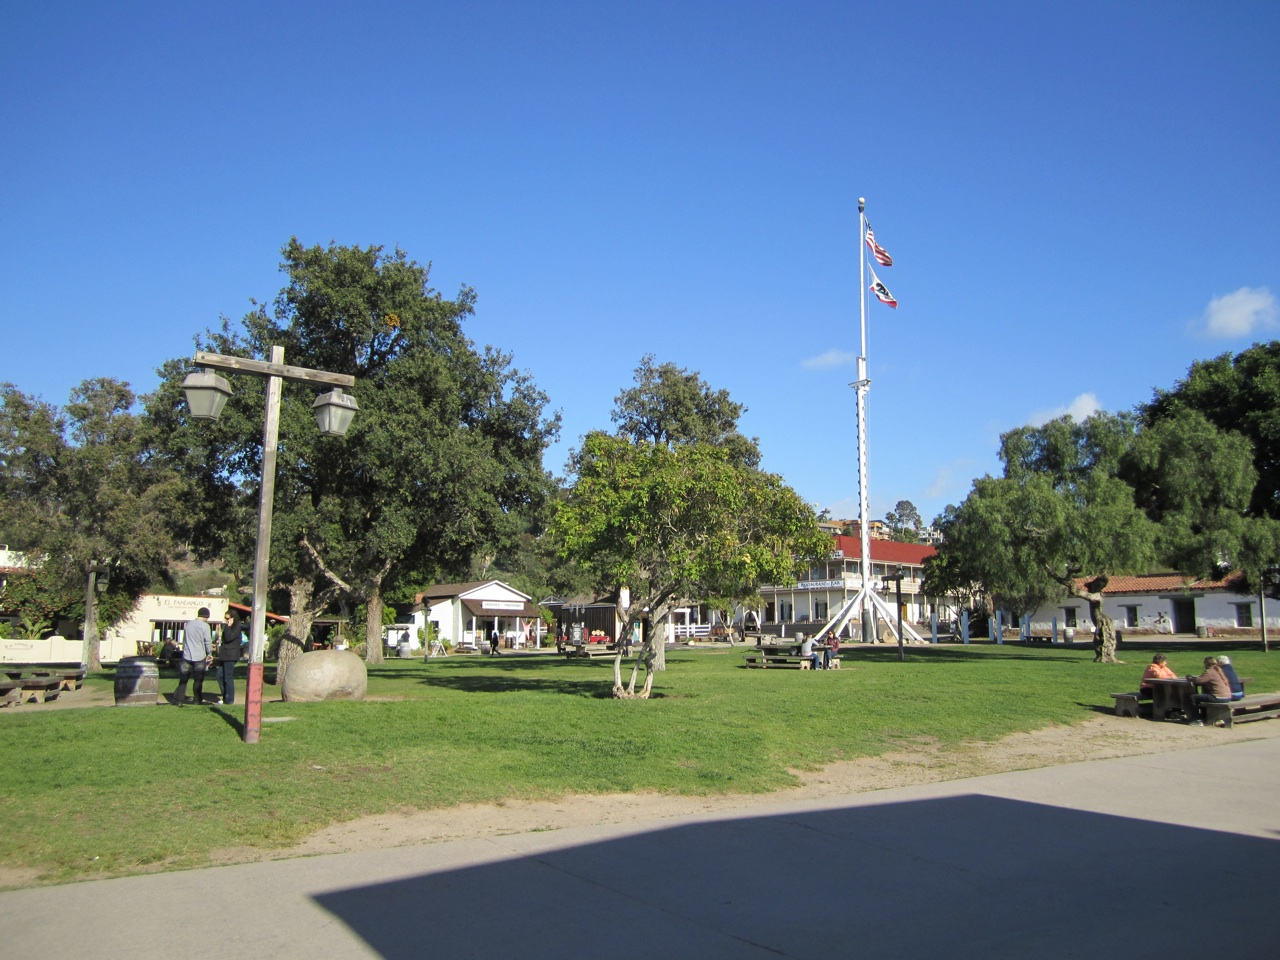 The Plaza That The First American Flag Was Raised In 1846